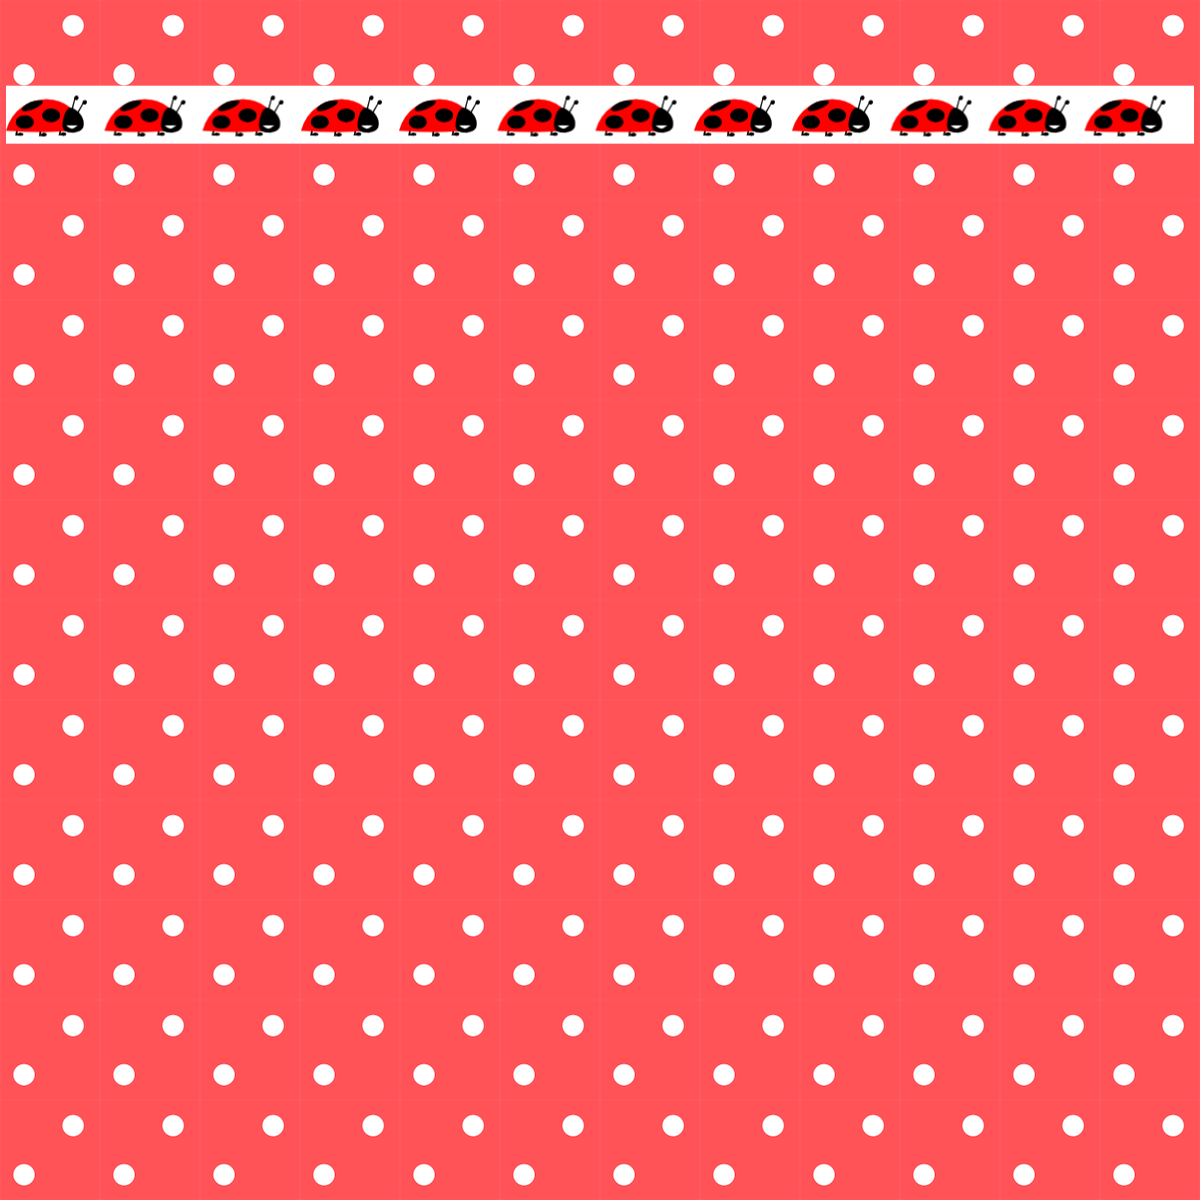 ladybug paper Here we are with another adorable and simple paper ladybug craft, we've made this ladybug paper craft a while ago but as crafting with paper is just so fun it was time to make another, different one after all this cute little bug deserves more spotlight right ready to make these cute little creatures.